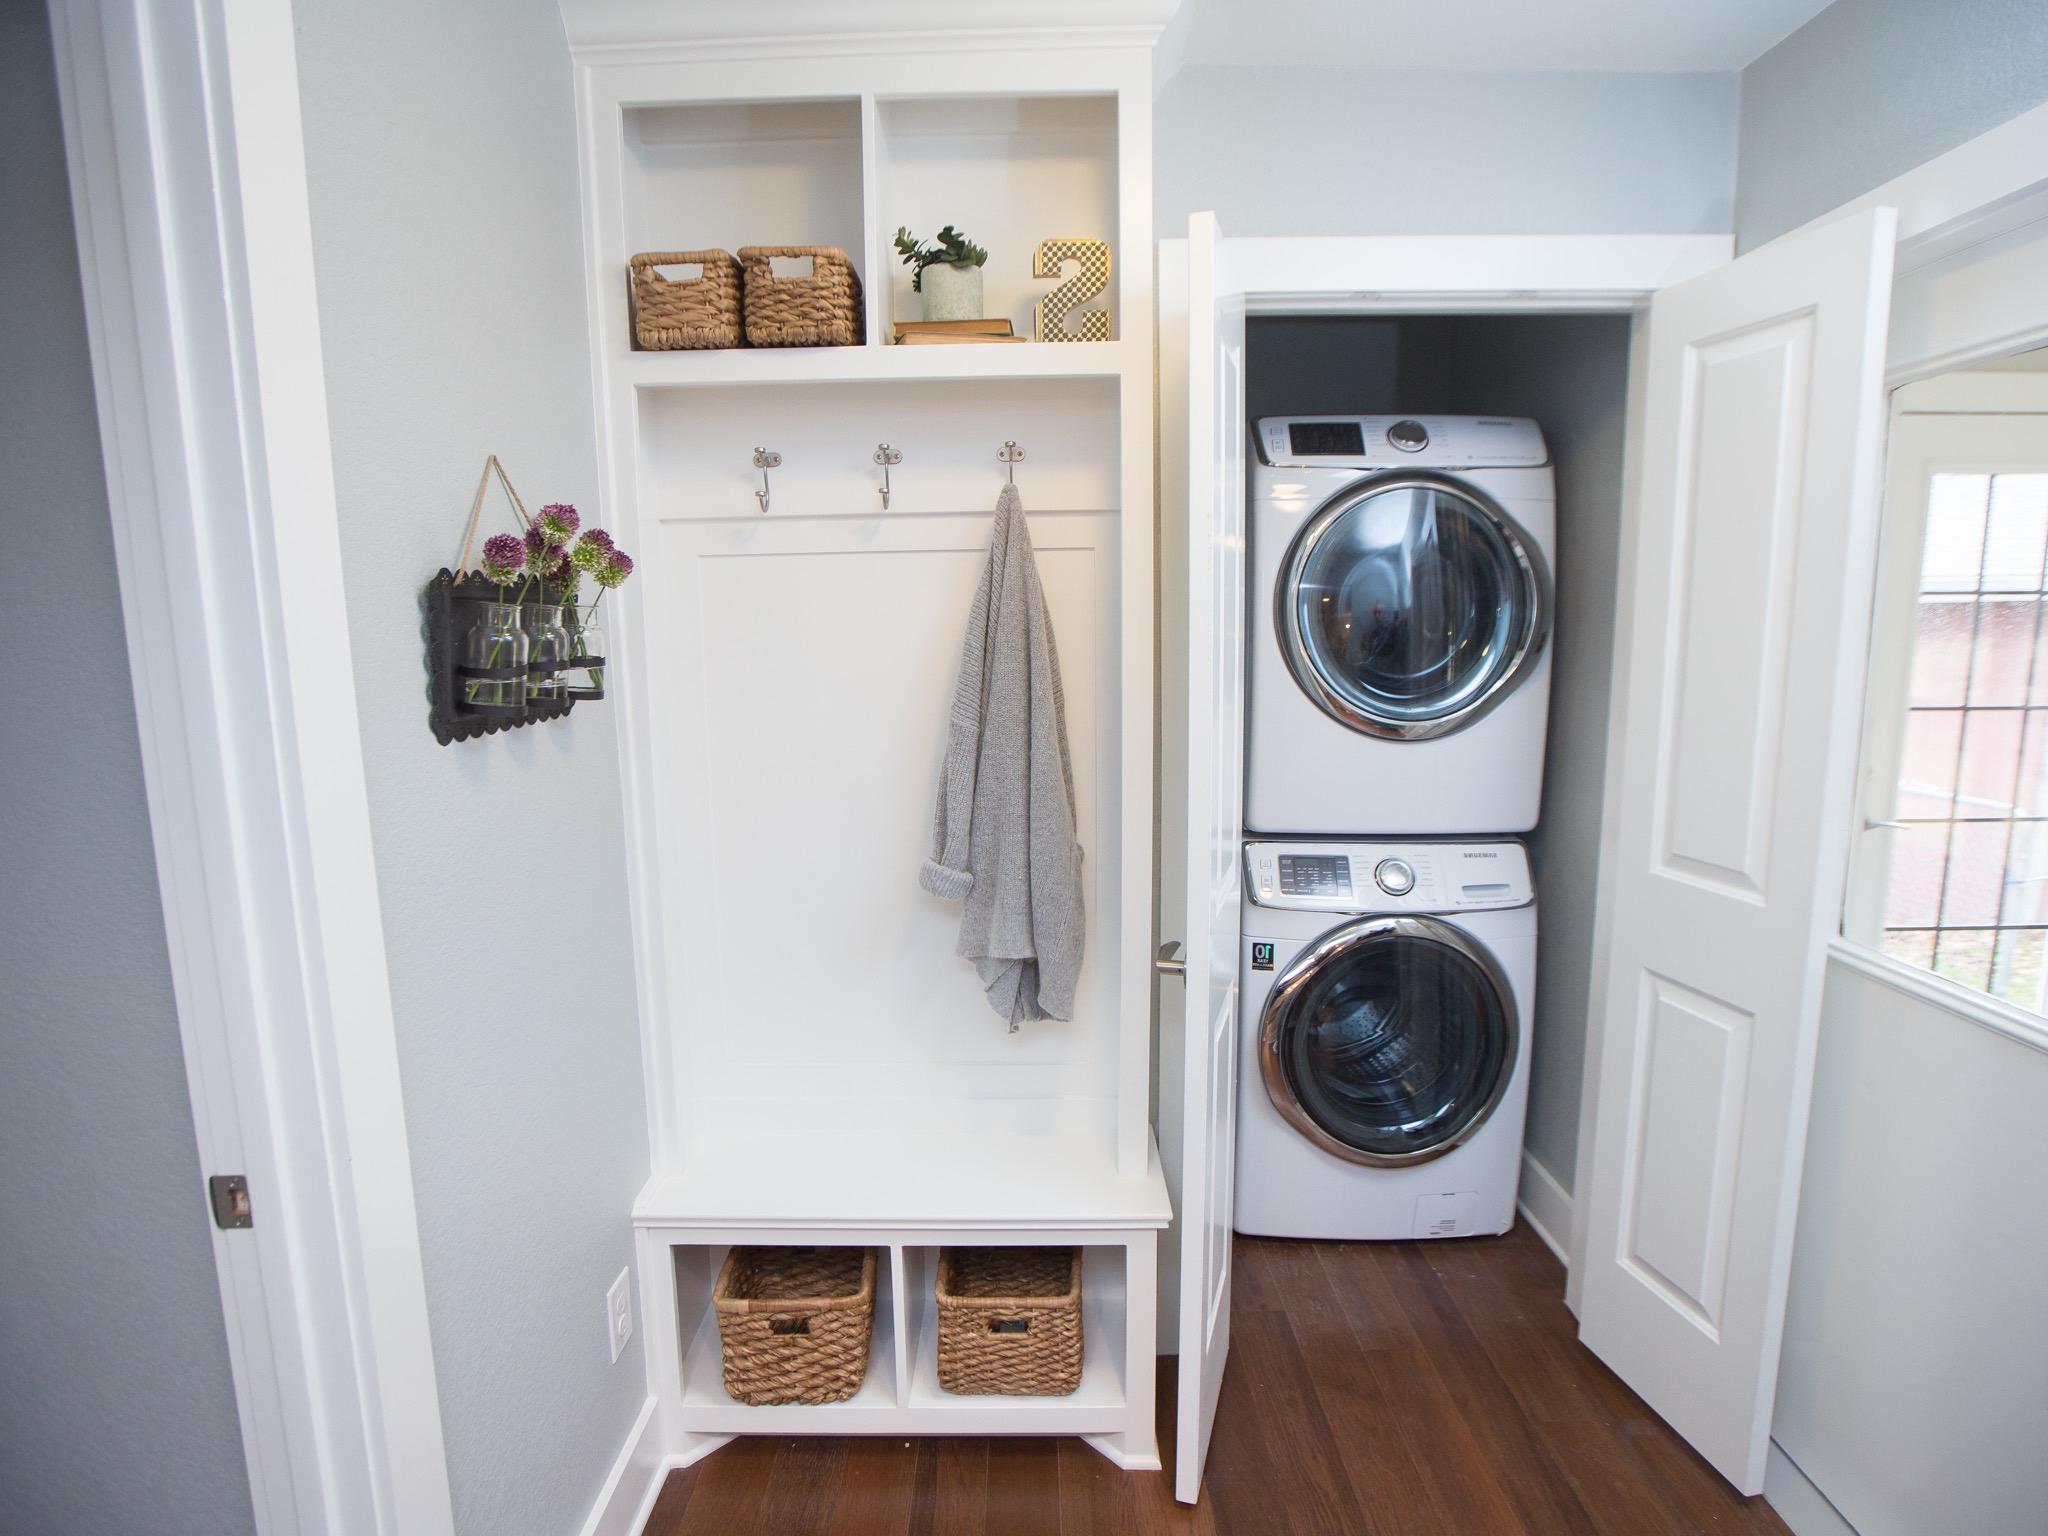 Simple Laundry Closet And Storage For Small Interior (Image 17 of 26)